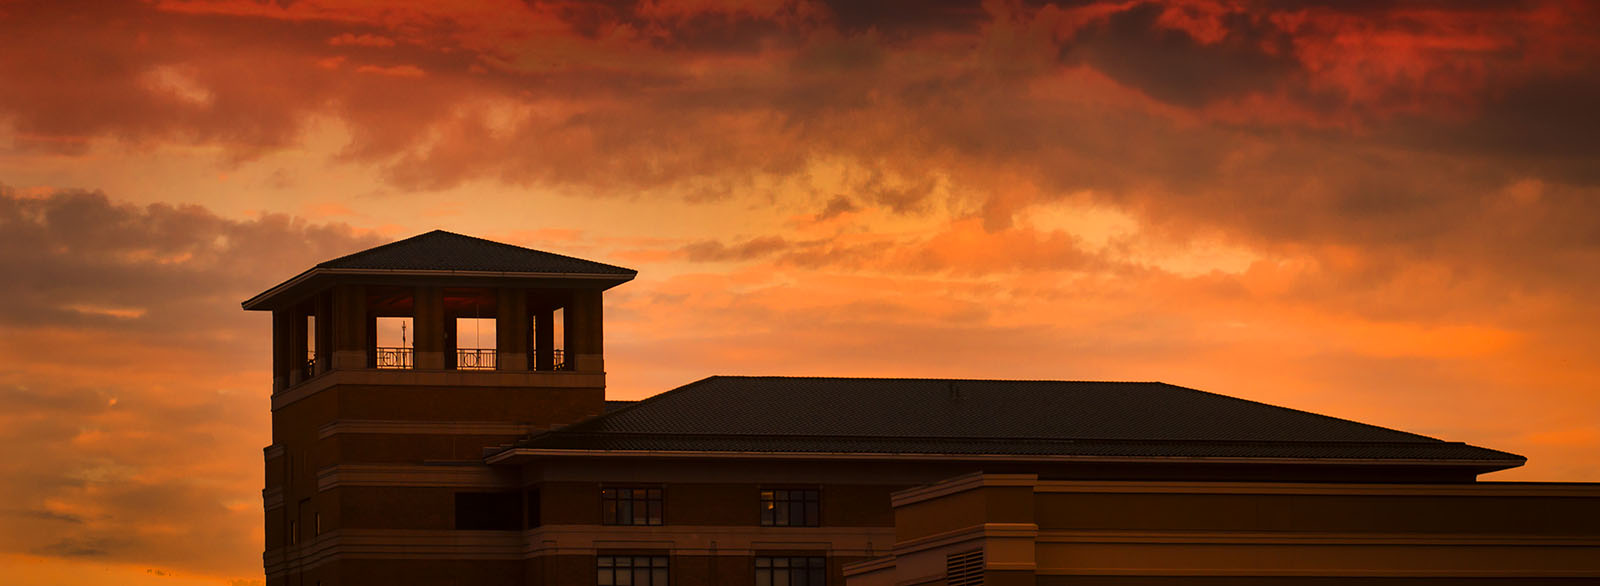 Columbus Regional Hospital campanille and tower at dawn